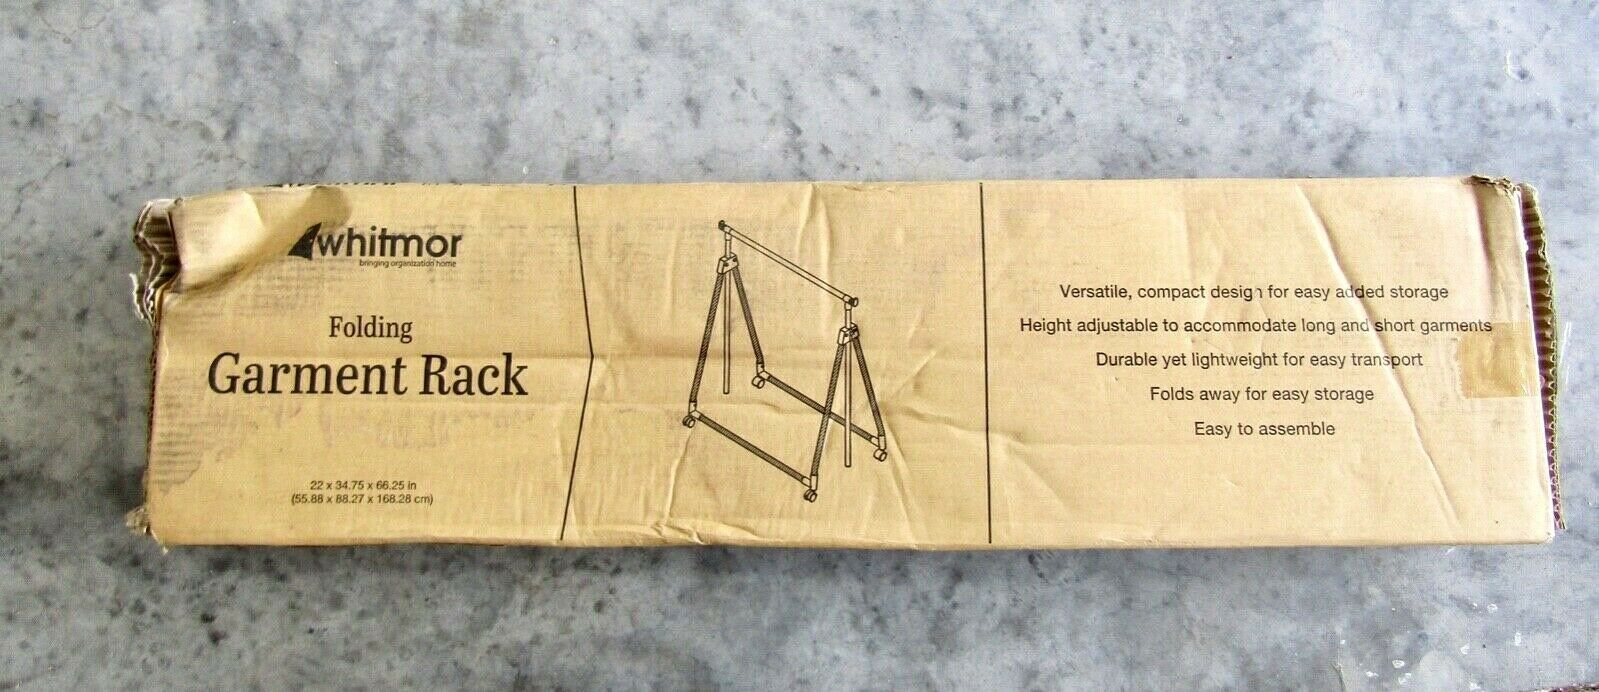 "Whitmor Folding Garment Rack Rolling, Adjustable Height 22""x34.5""x66.25"" - NIB - $24.70"